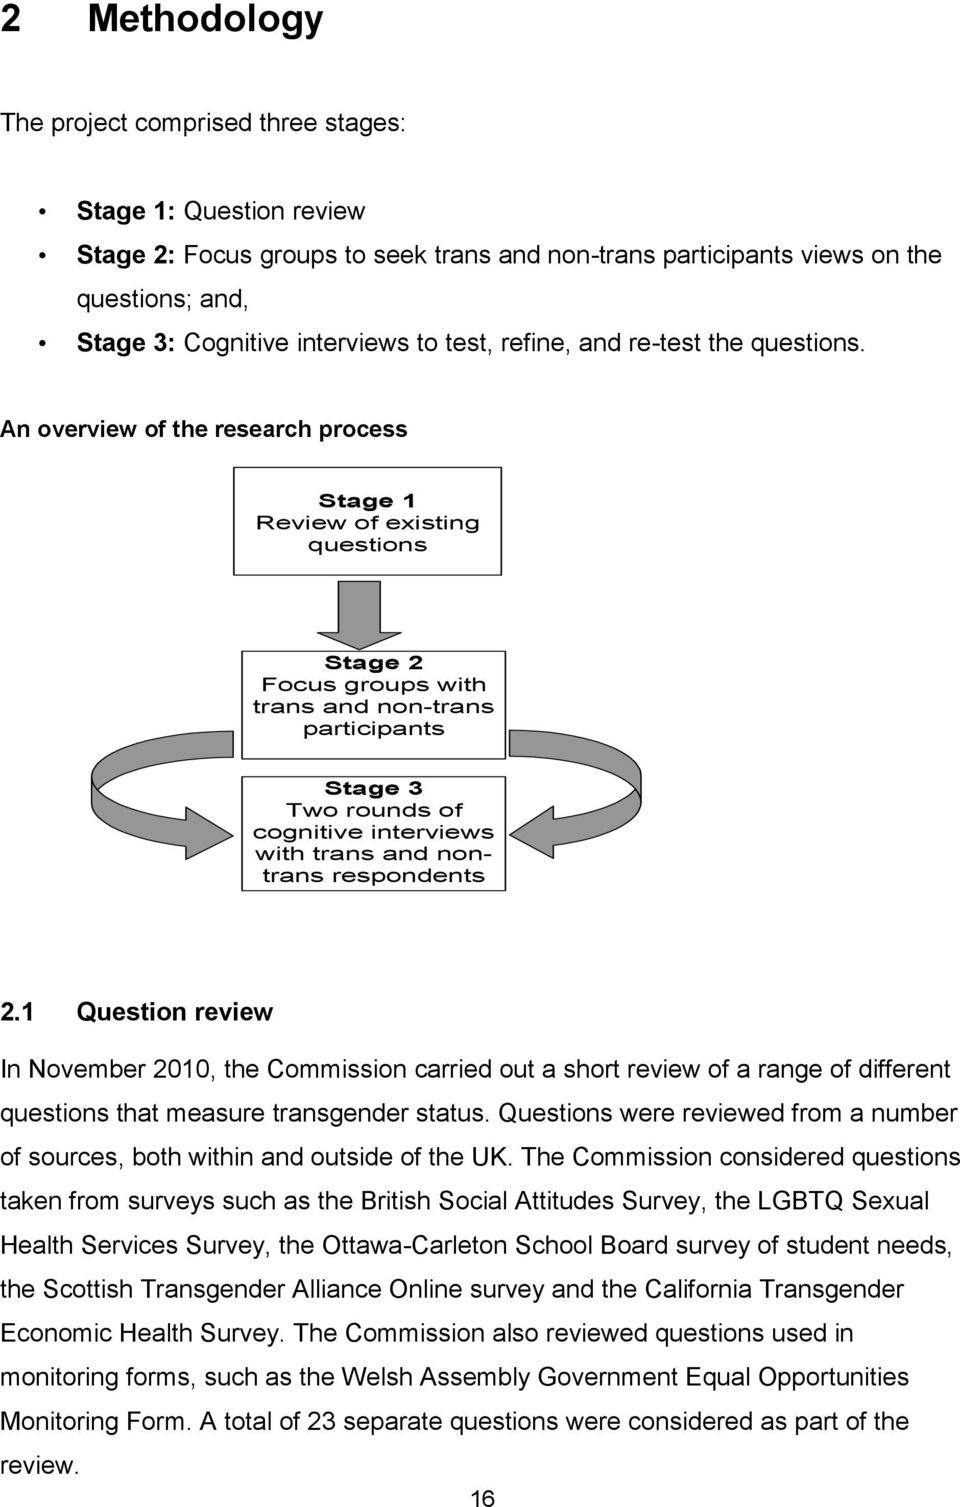 An overview of the research process Stage 1 Review of existing questions Stage 2 Focus groups with trans and non-trans participants Stage 3 Two rounds of cognitive interviews with trans and nontrans